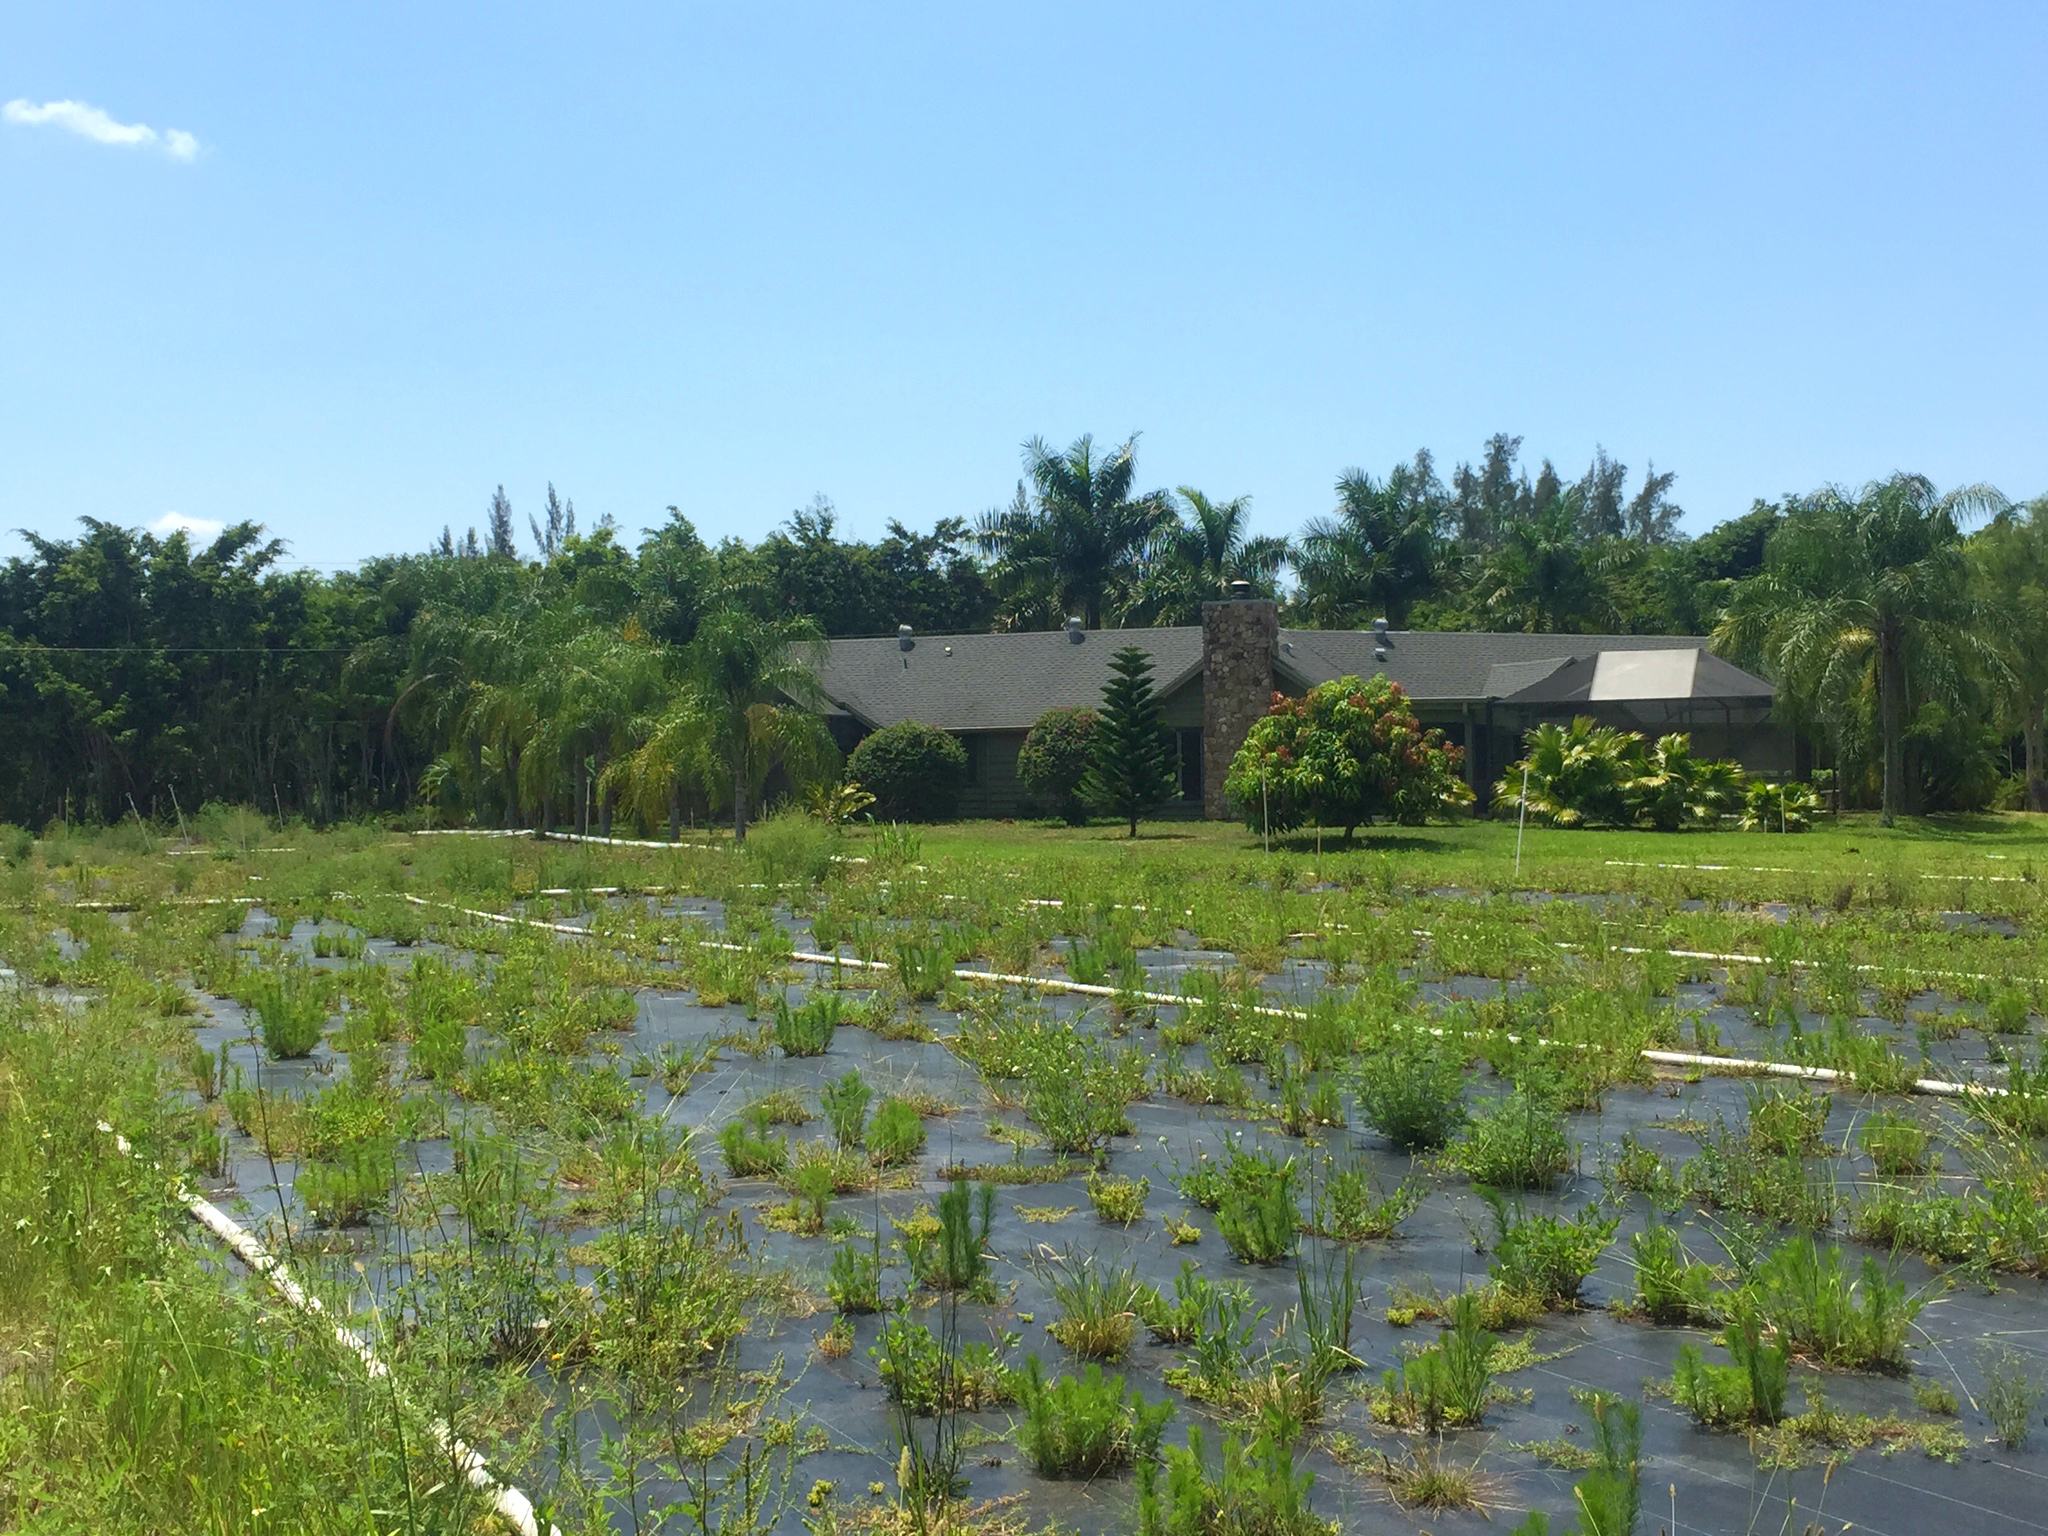 Loxahatchee Groves Homes For Sale Florida IPI International Properties and Investments LLC